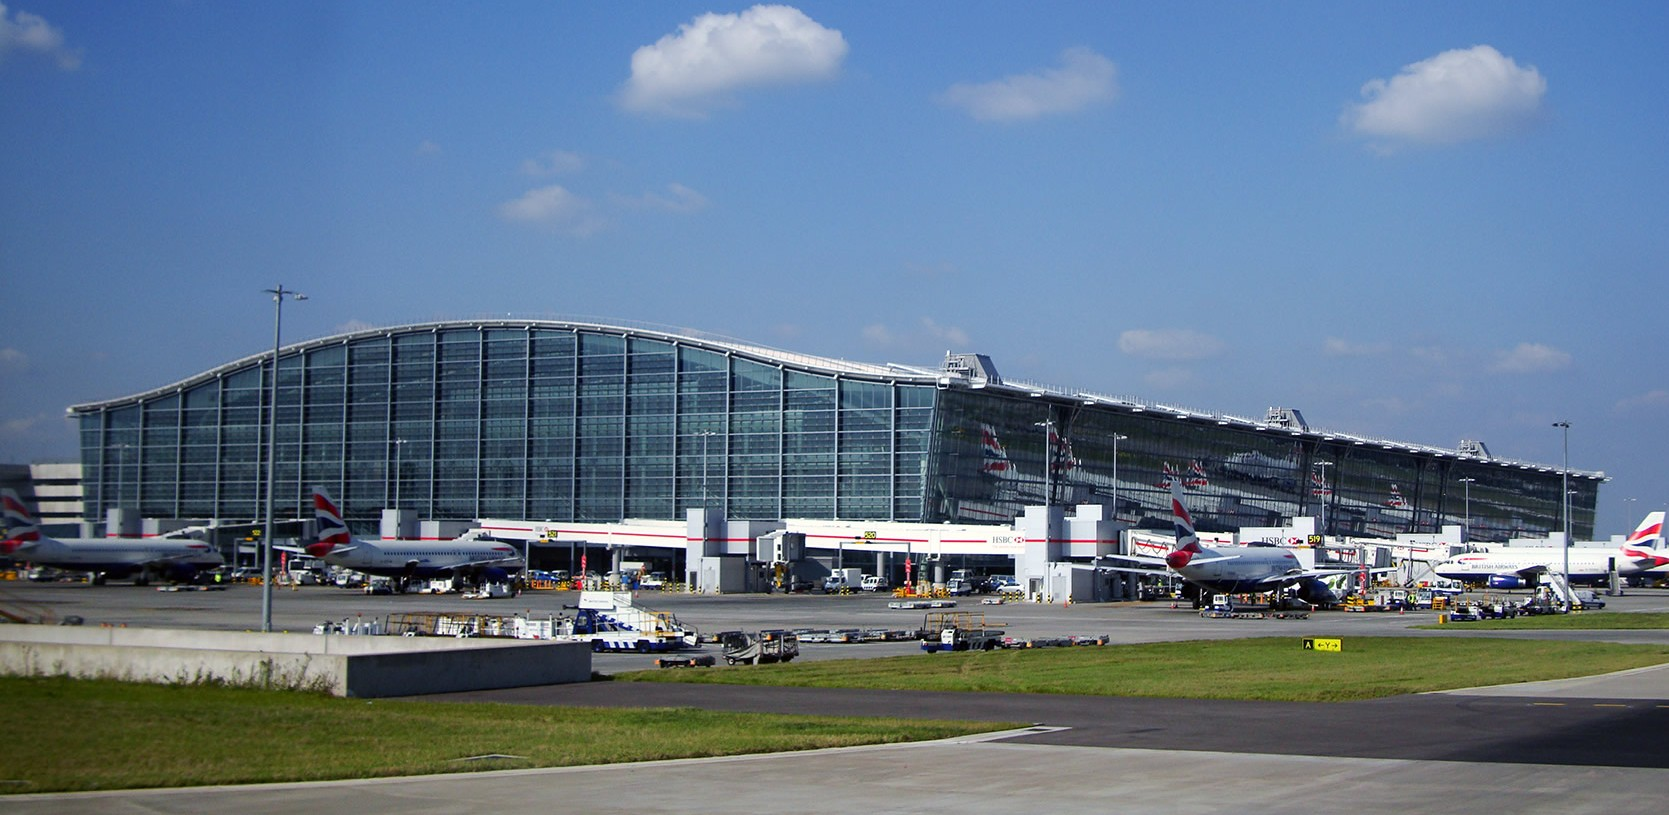 Heathrow categorically promised that Terminal 5 would NOT lead to calls for a third runway